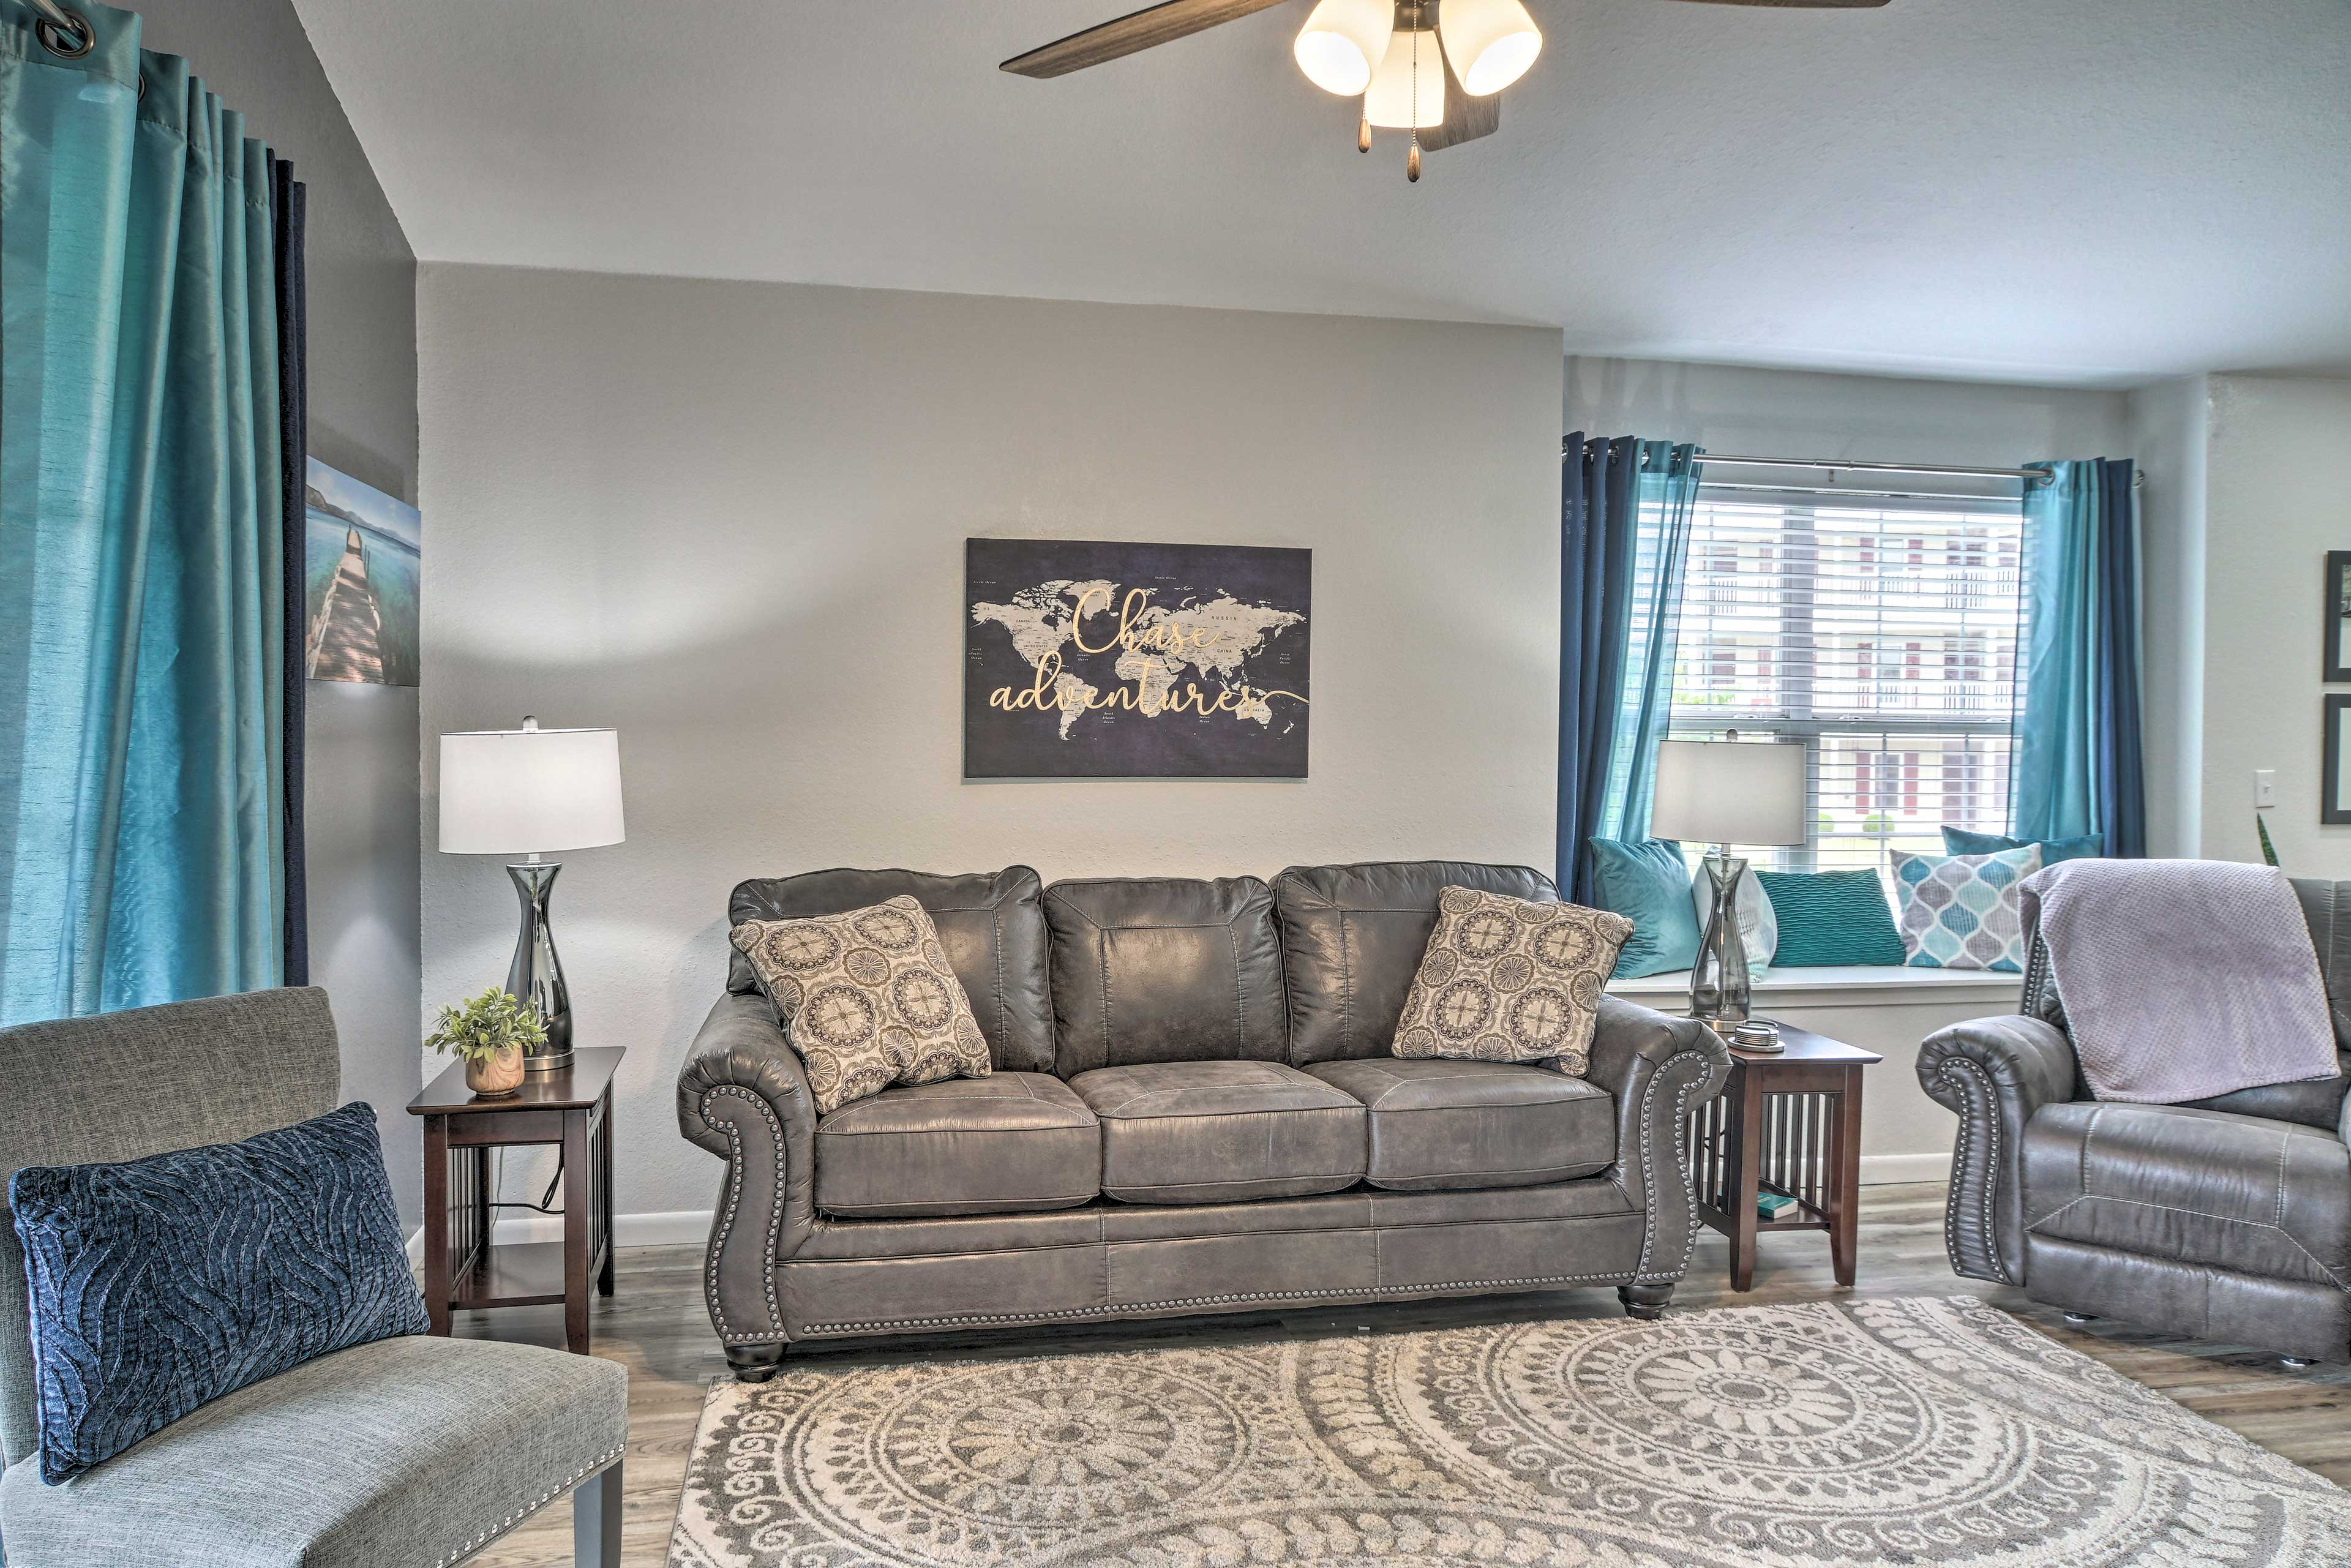 Living Room | Electric Fireplace | End Tables w/USB Ports